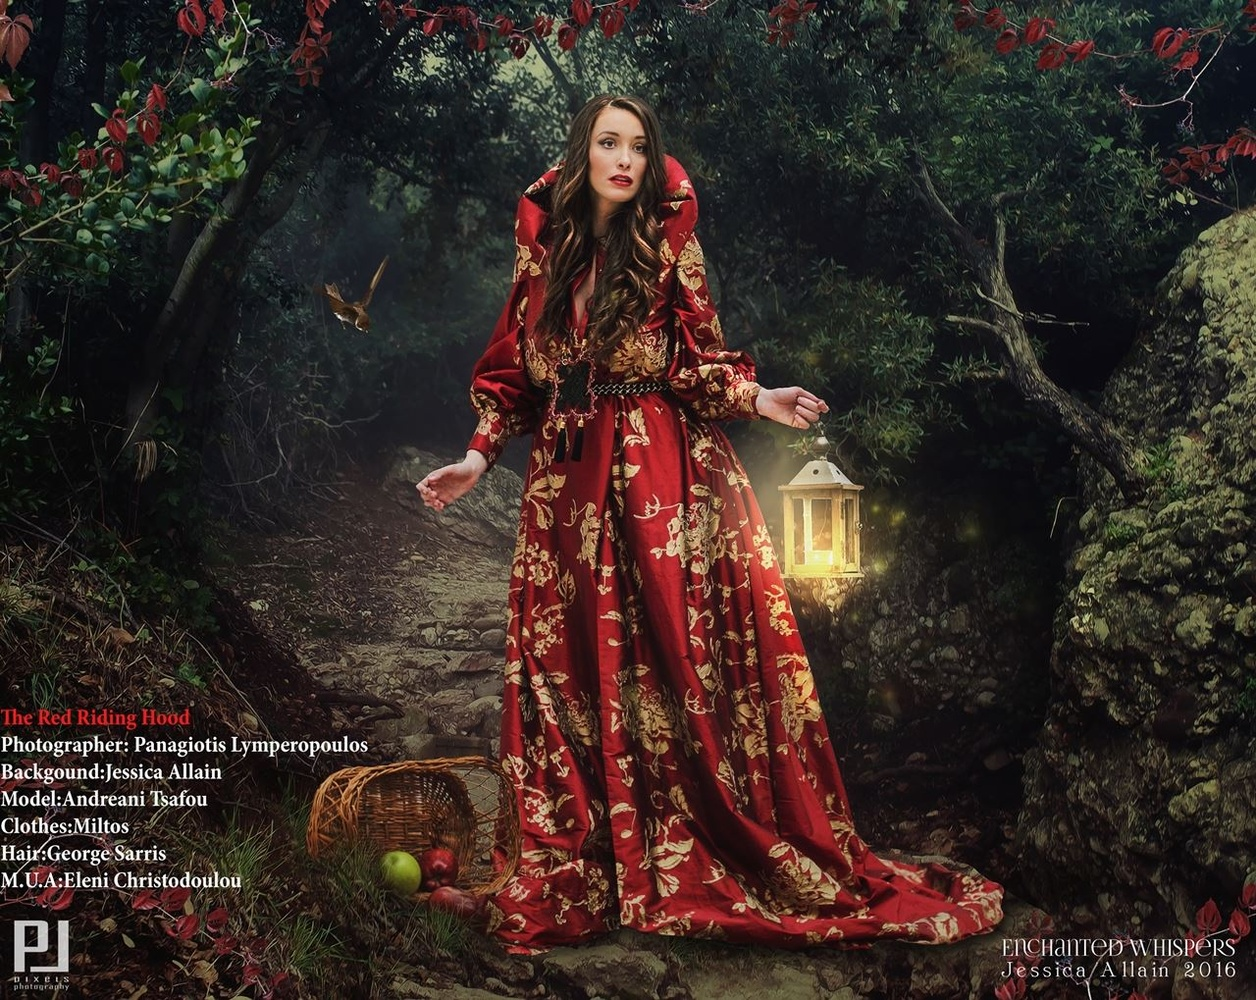 The Red Riding Hood by Panagiotis Lymperopoulos